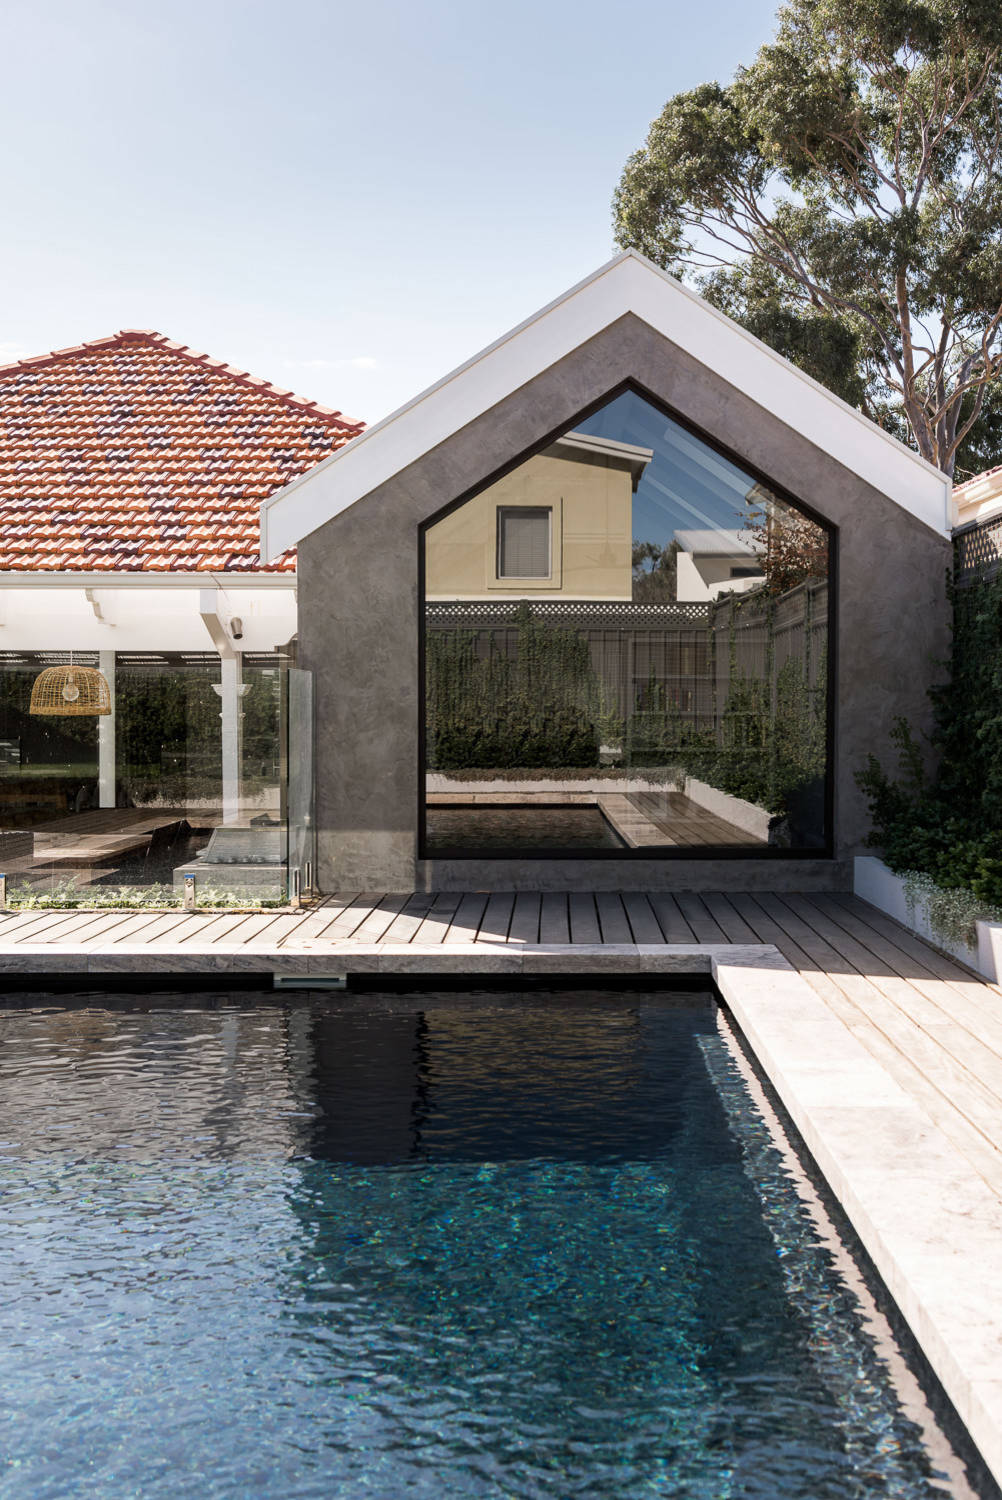 House in Mosman Park by Hardy Constructions